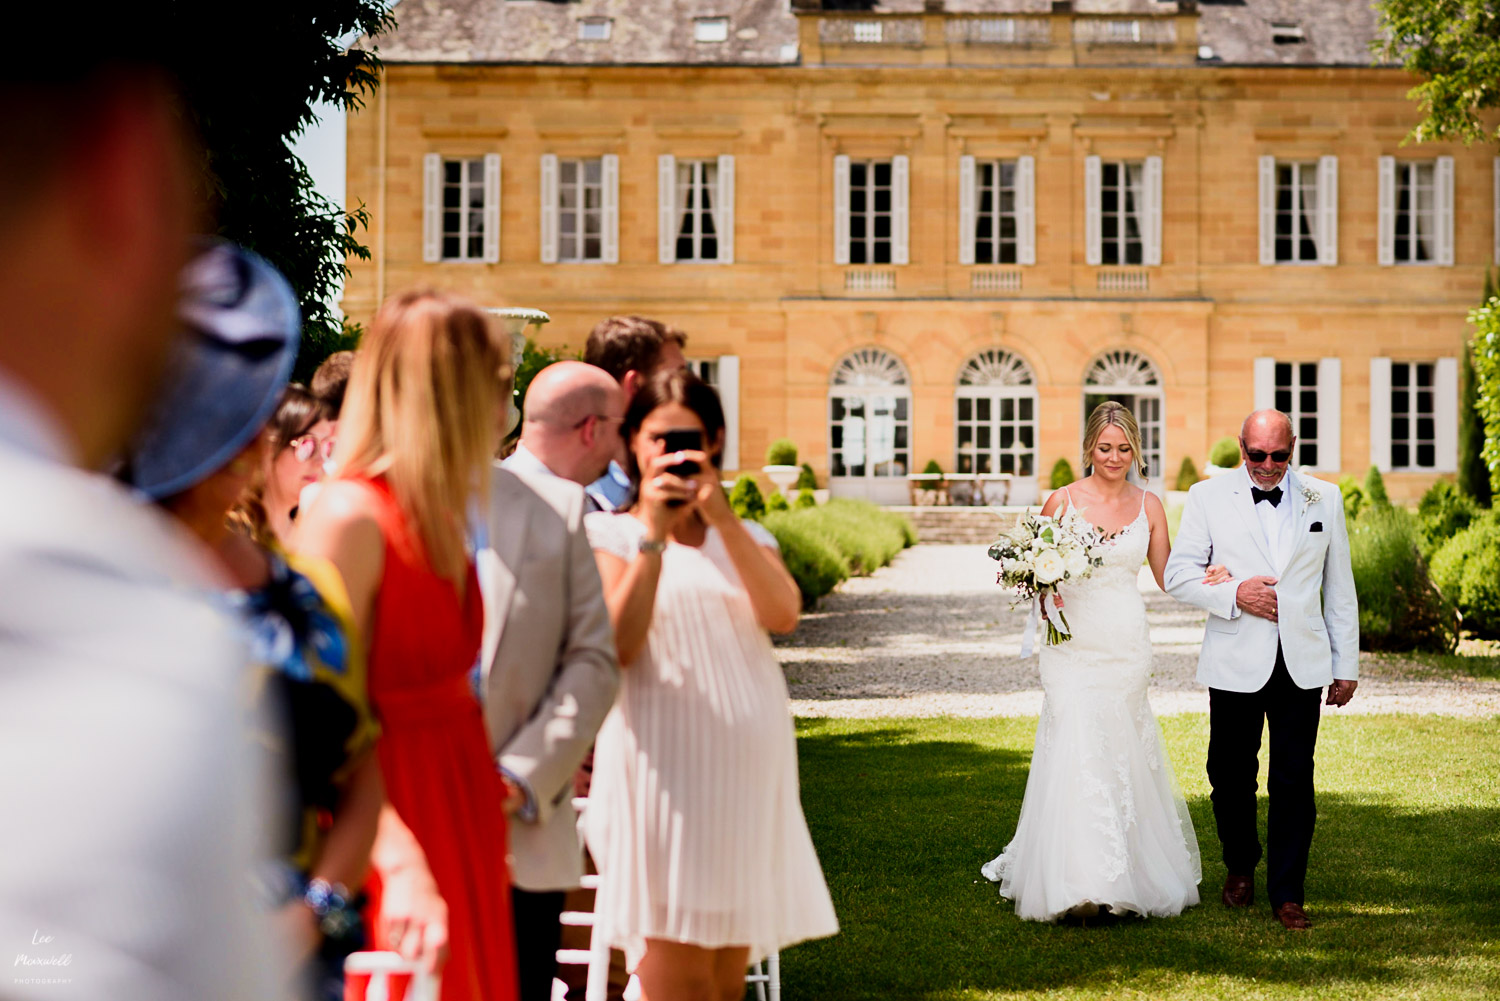 Bride's entrance at Chateau La Durantie